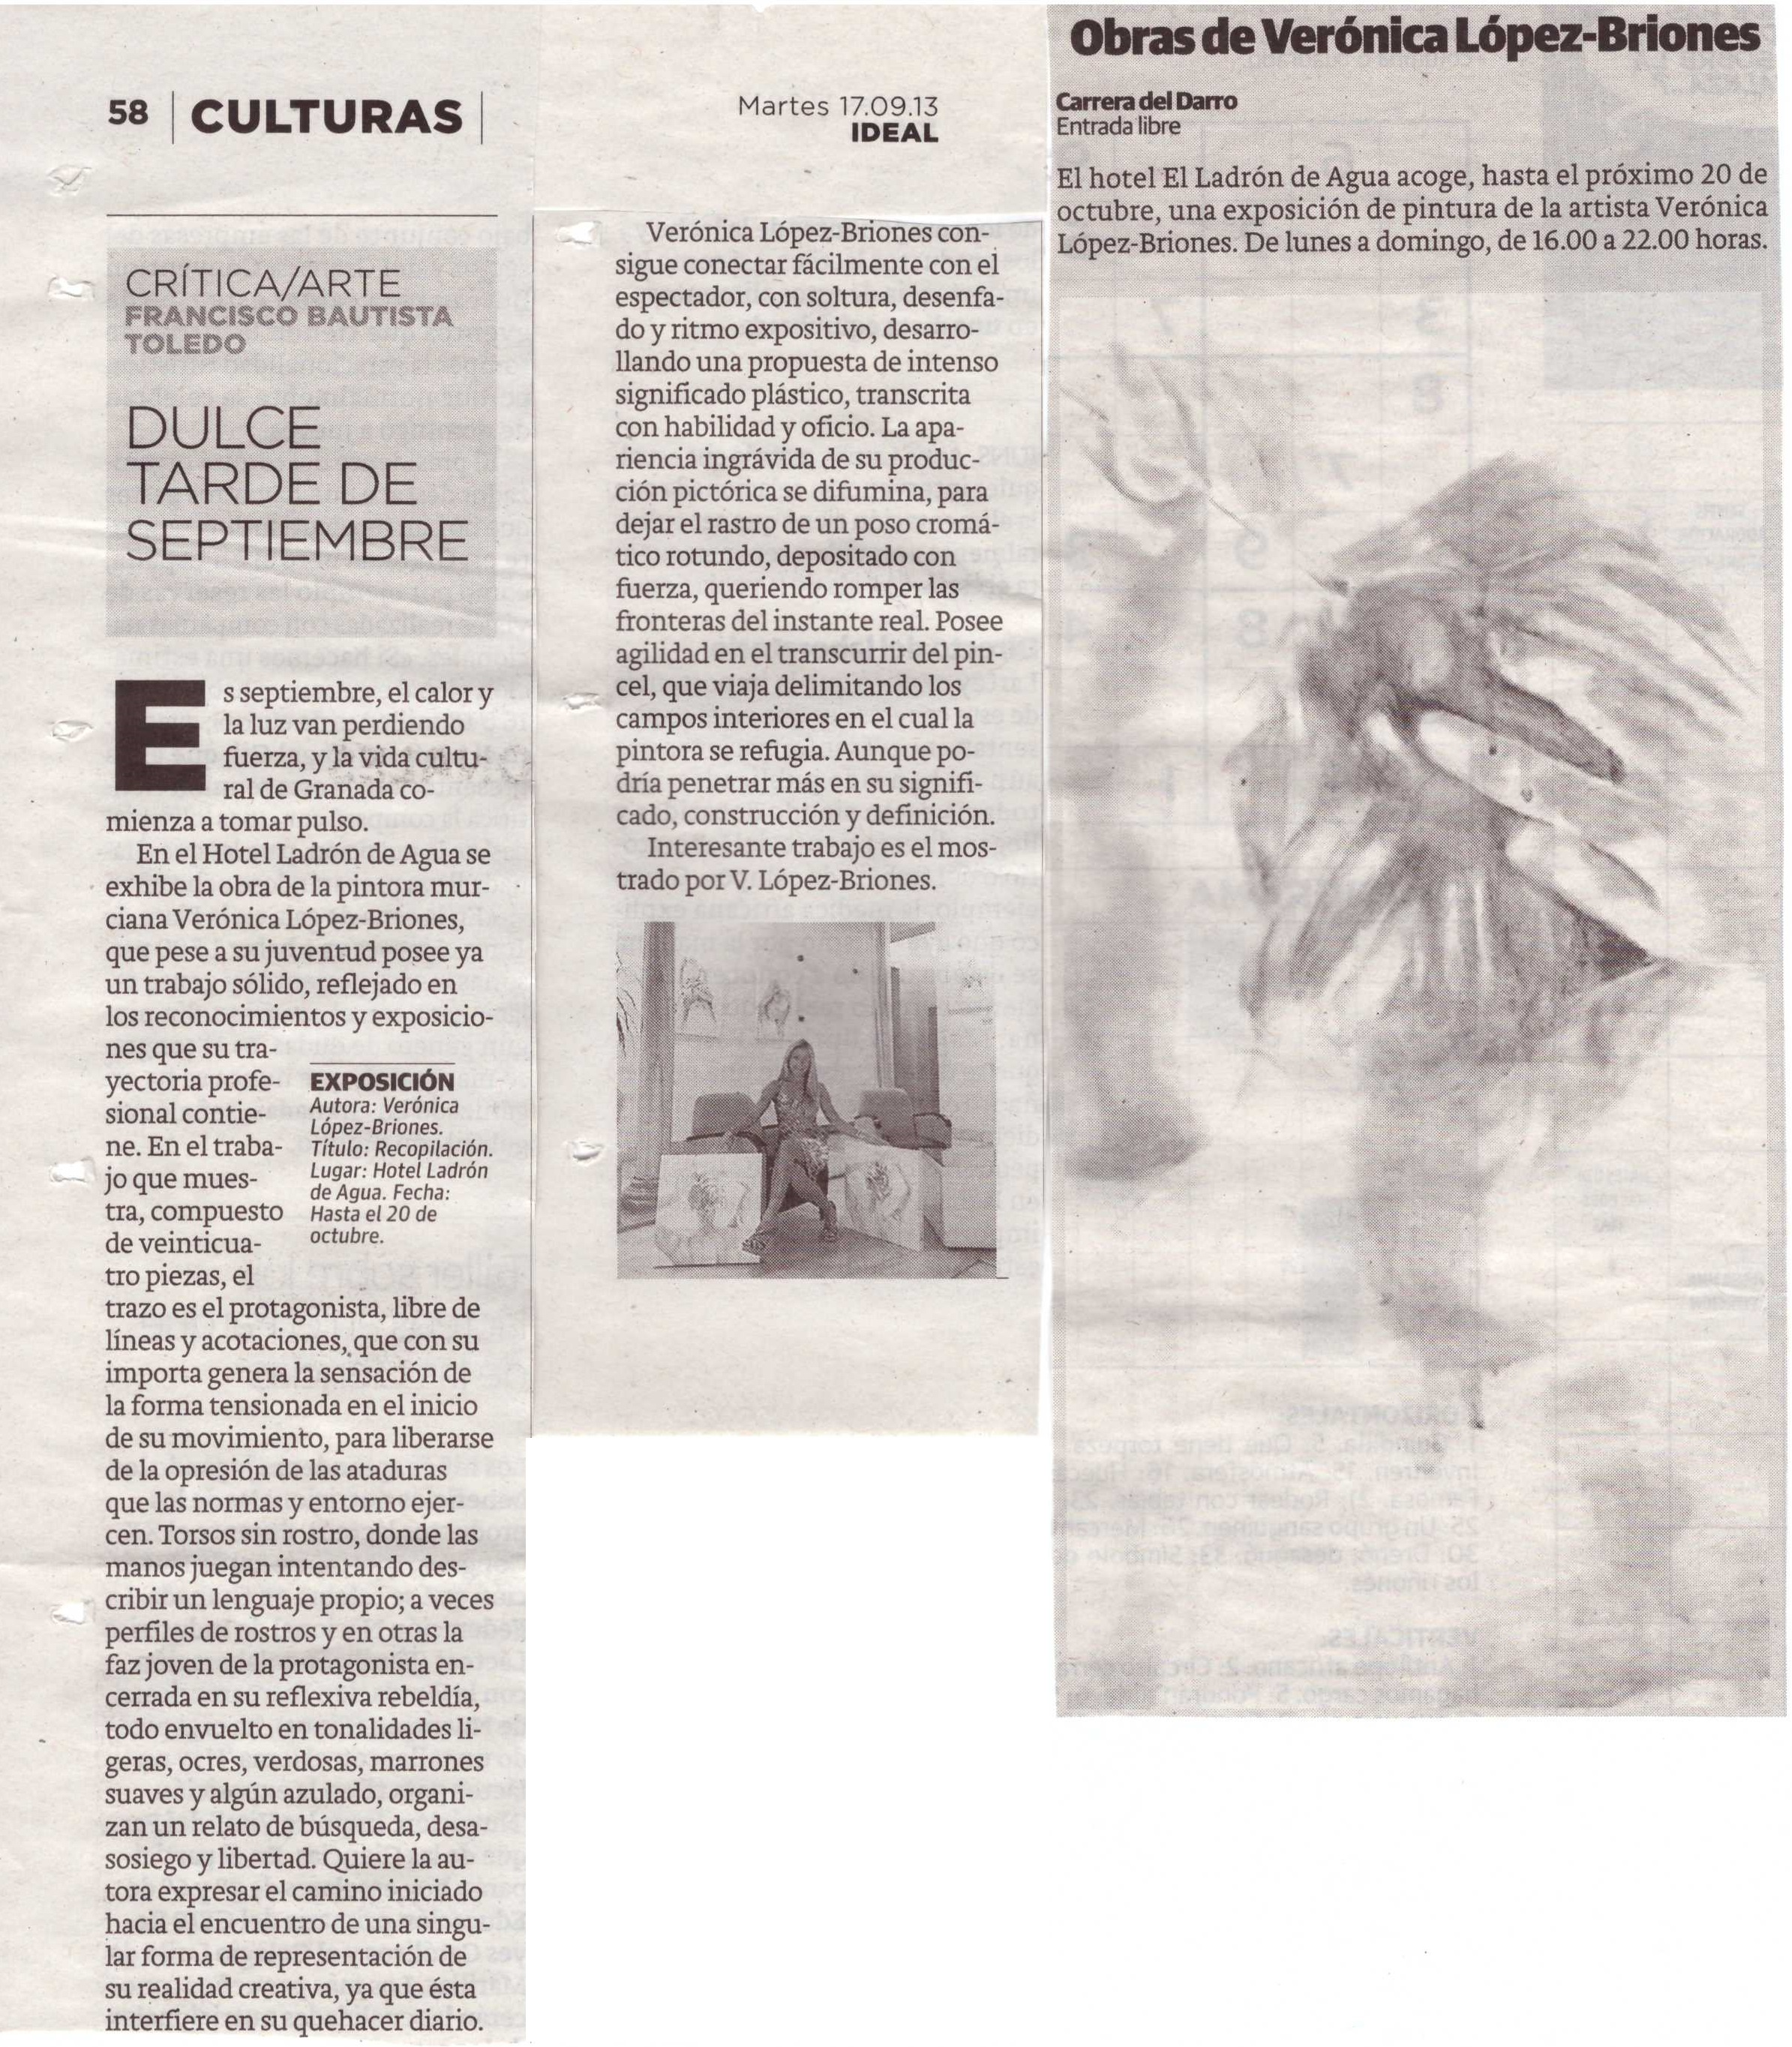 Art review of Exhibition by Verónica López Briones